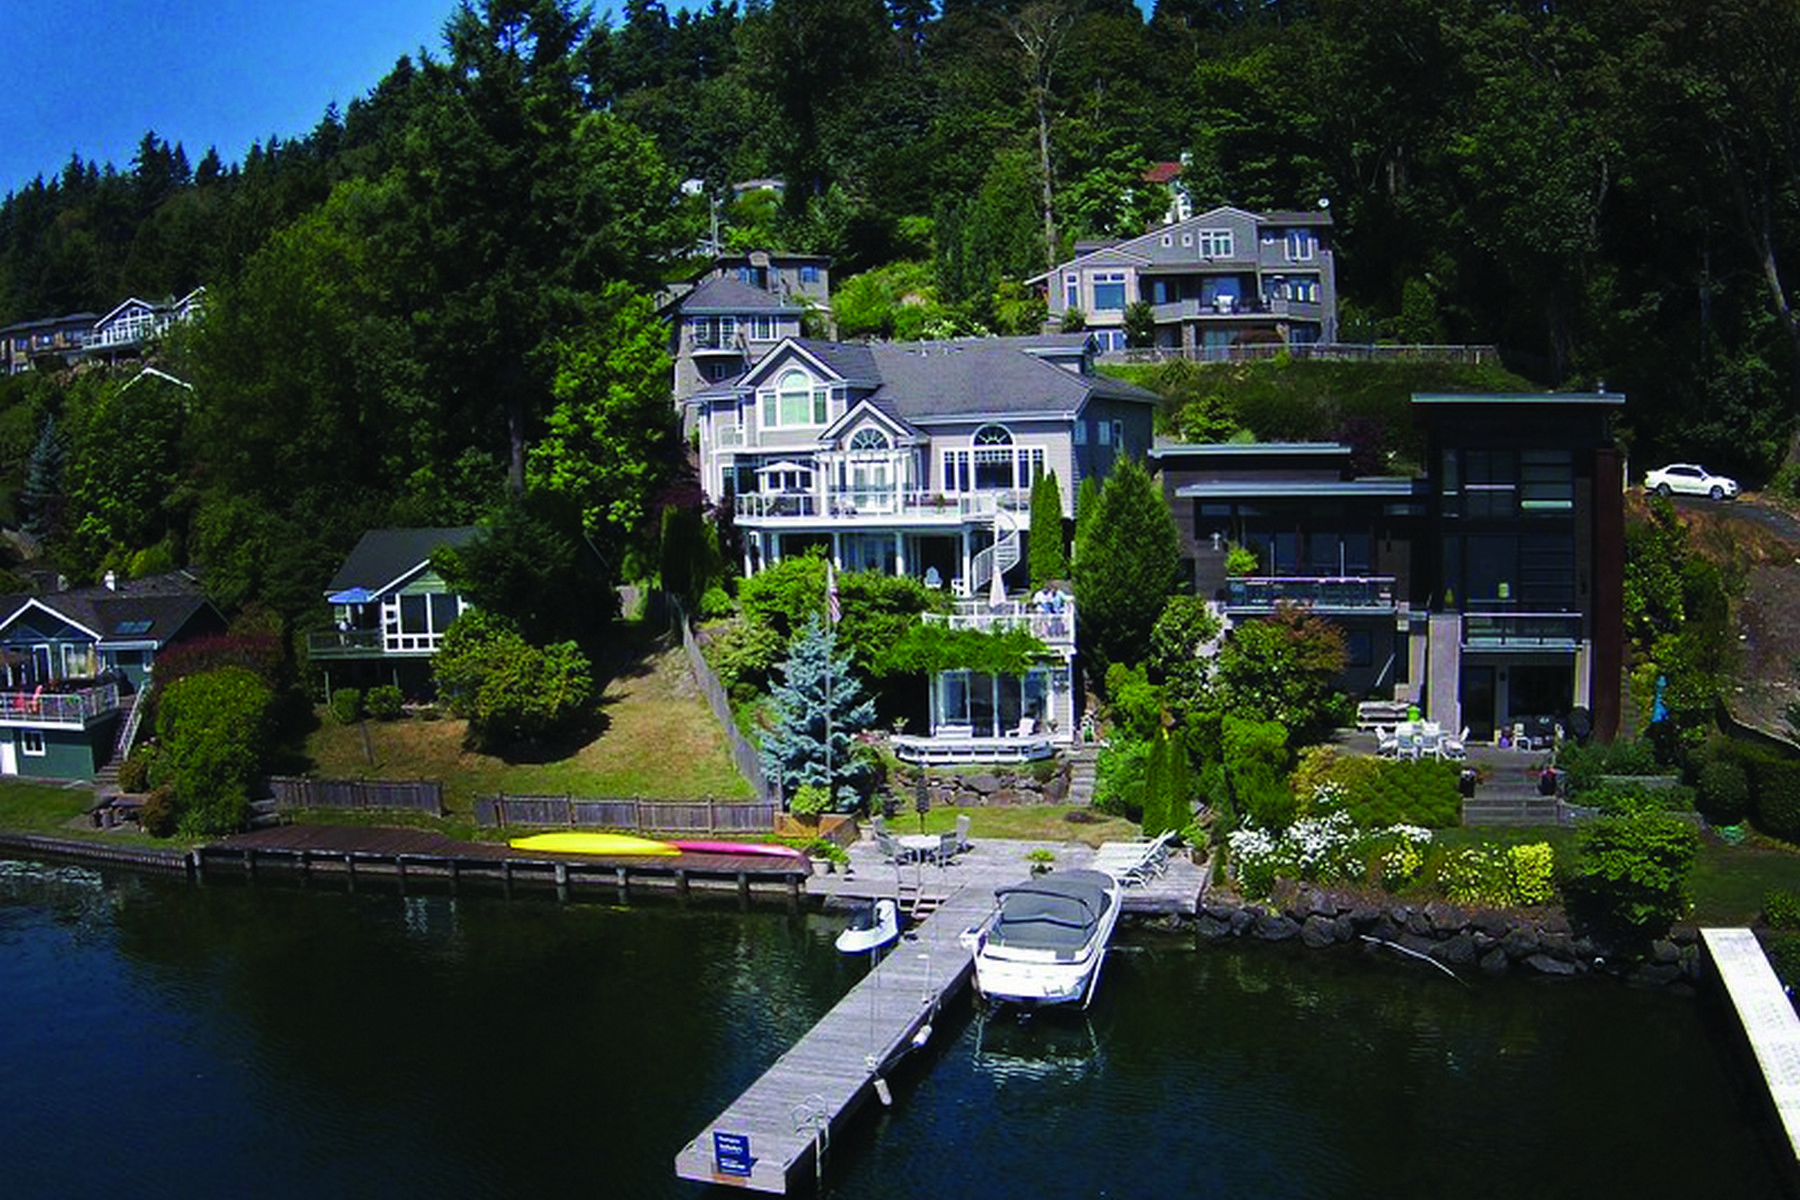 Maison unifamiliale pour l Vente à Peaceful South End Waterfront Estate 7908 E Mercer Wy Mercer Island, Washington, 98040 États-Unis